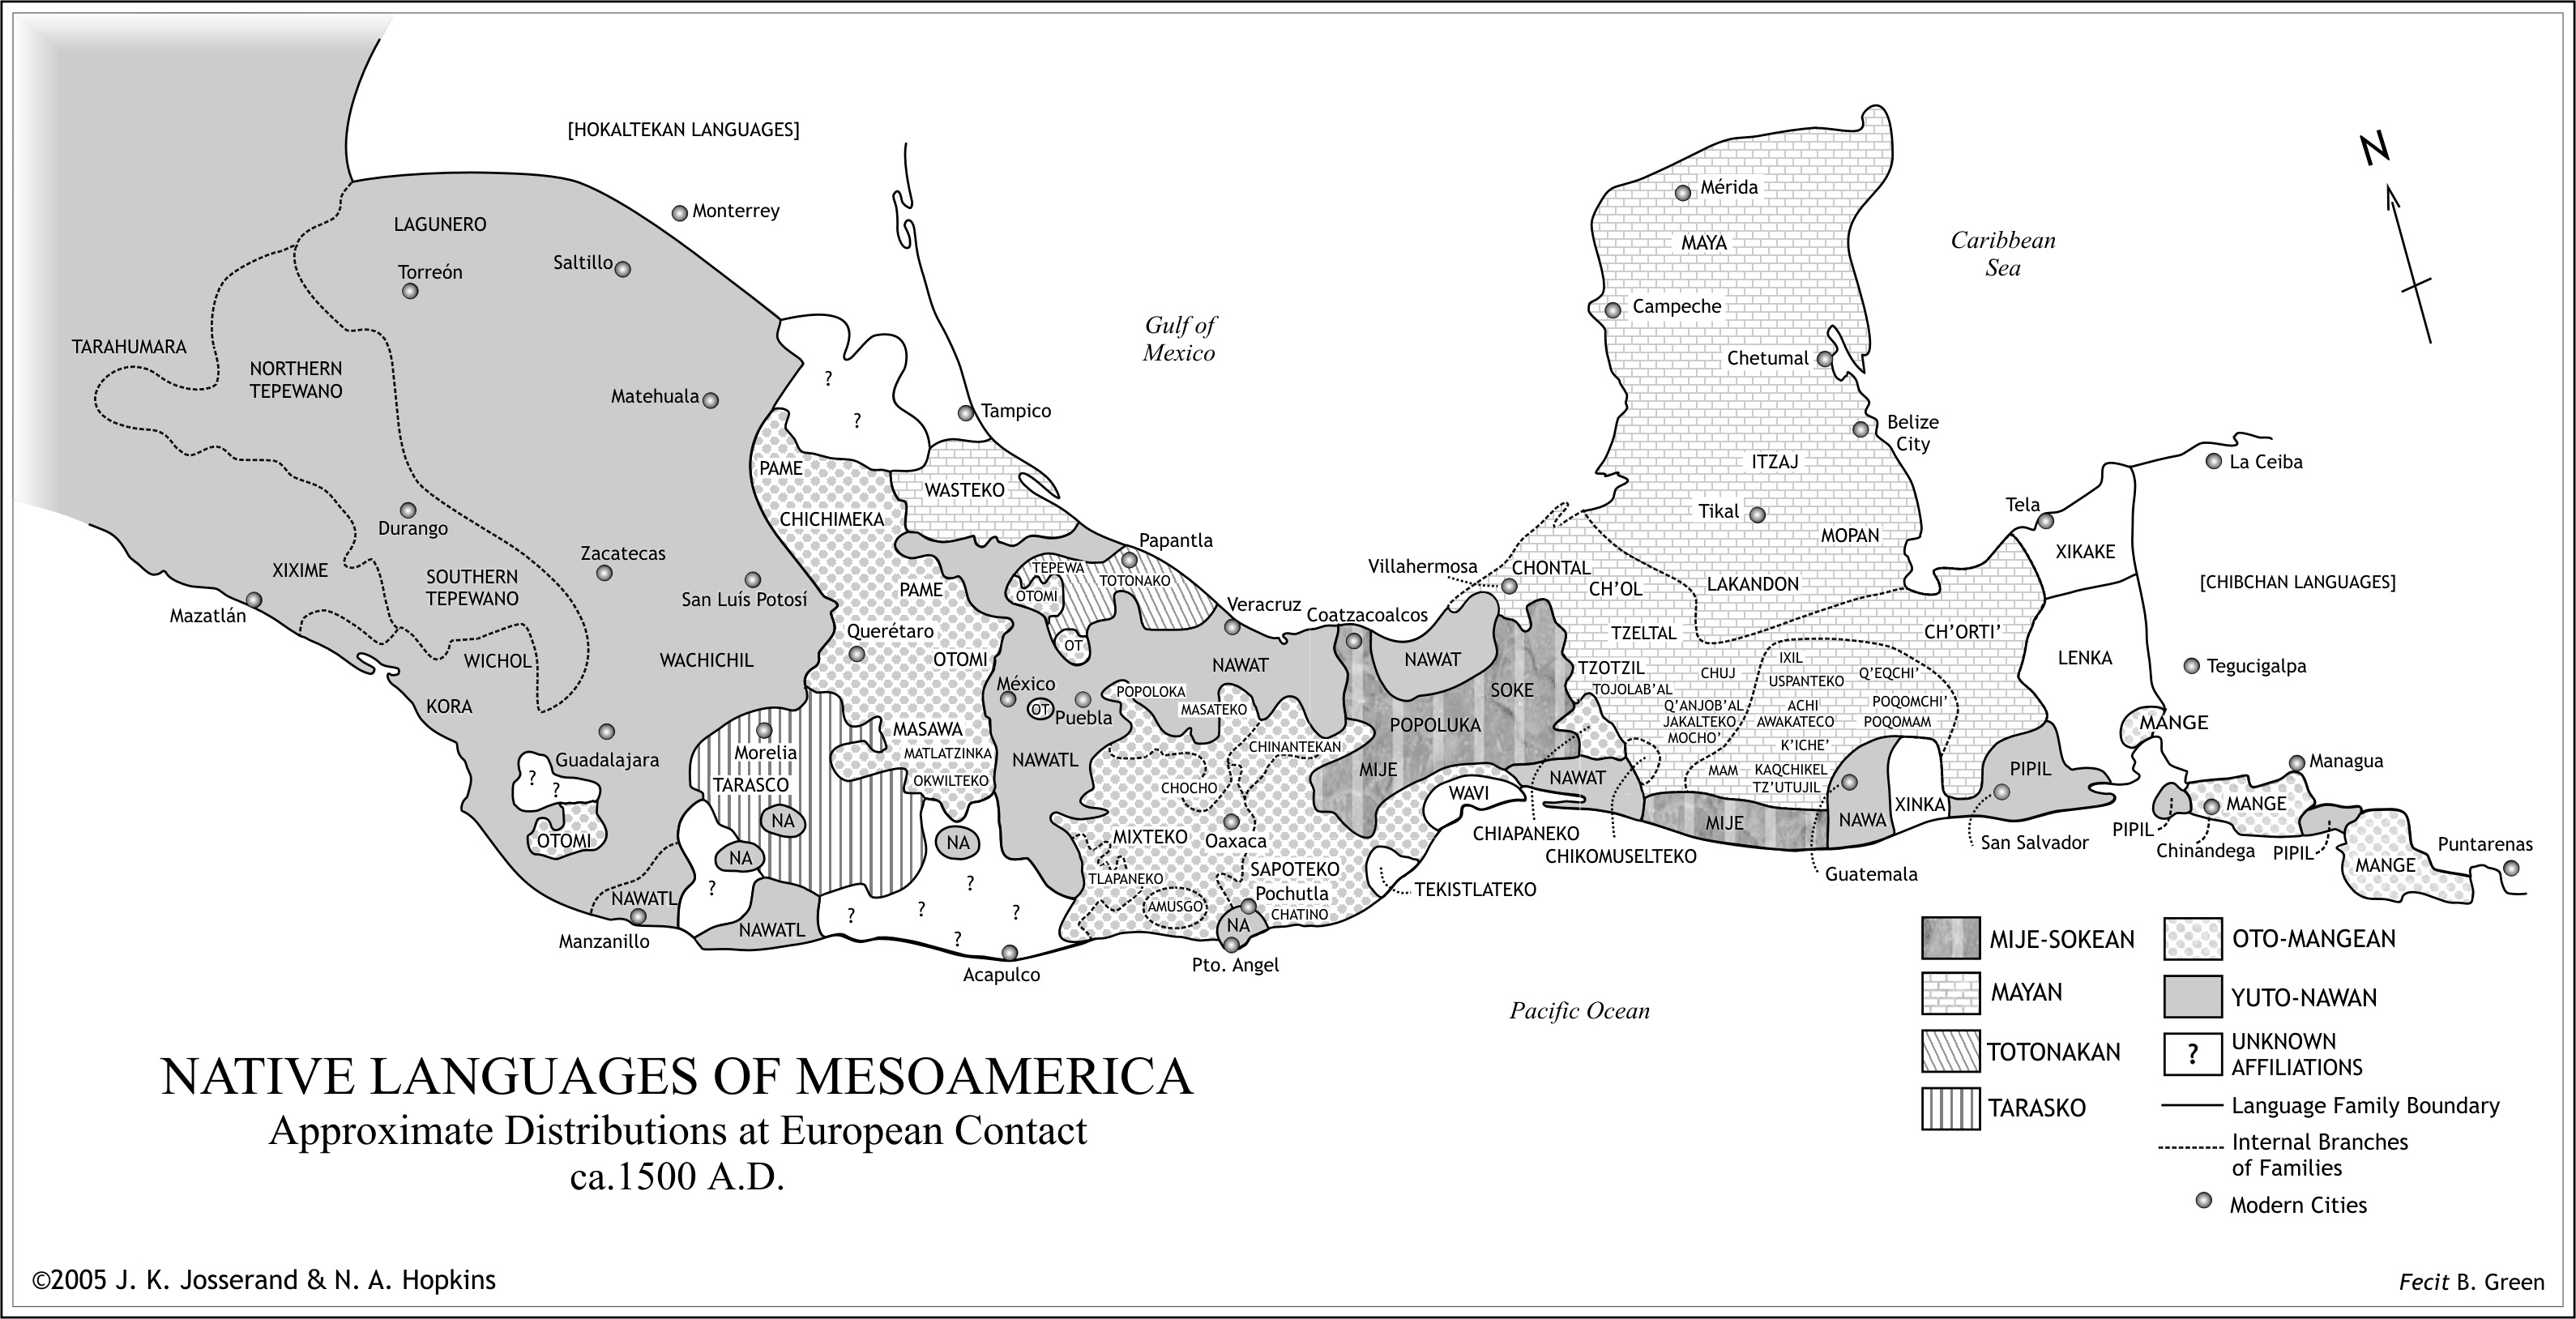 Click to enlarge image of Native Languages of Mesoamerica